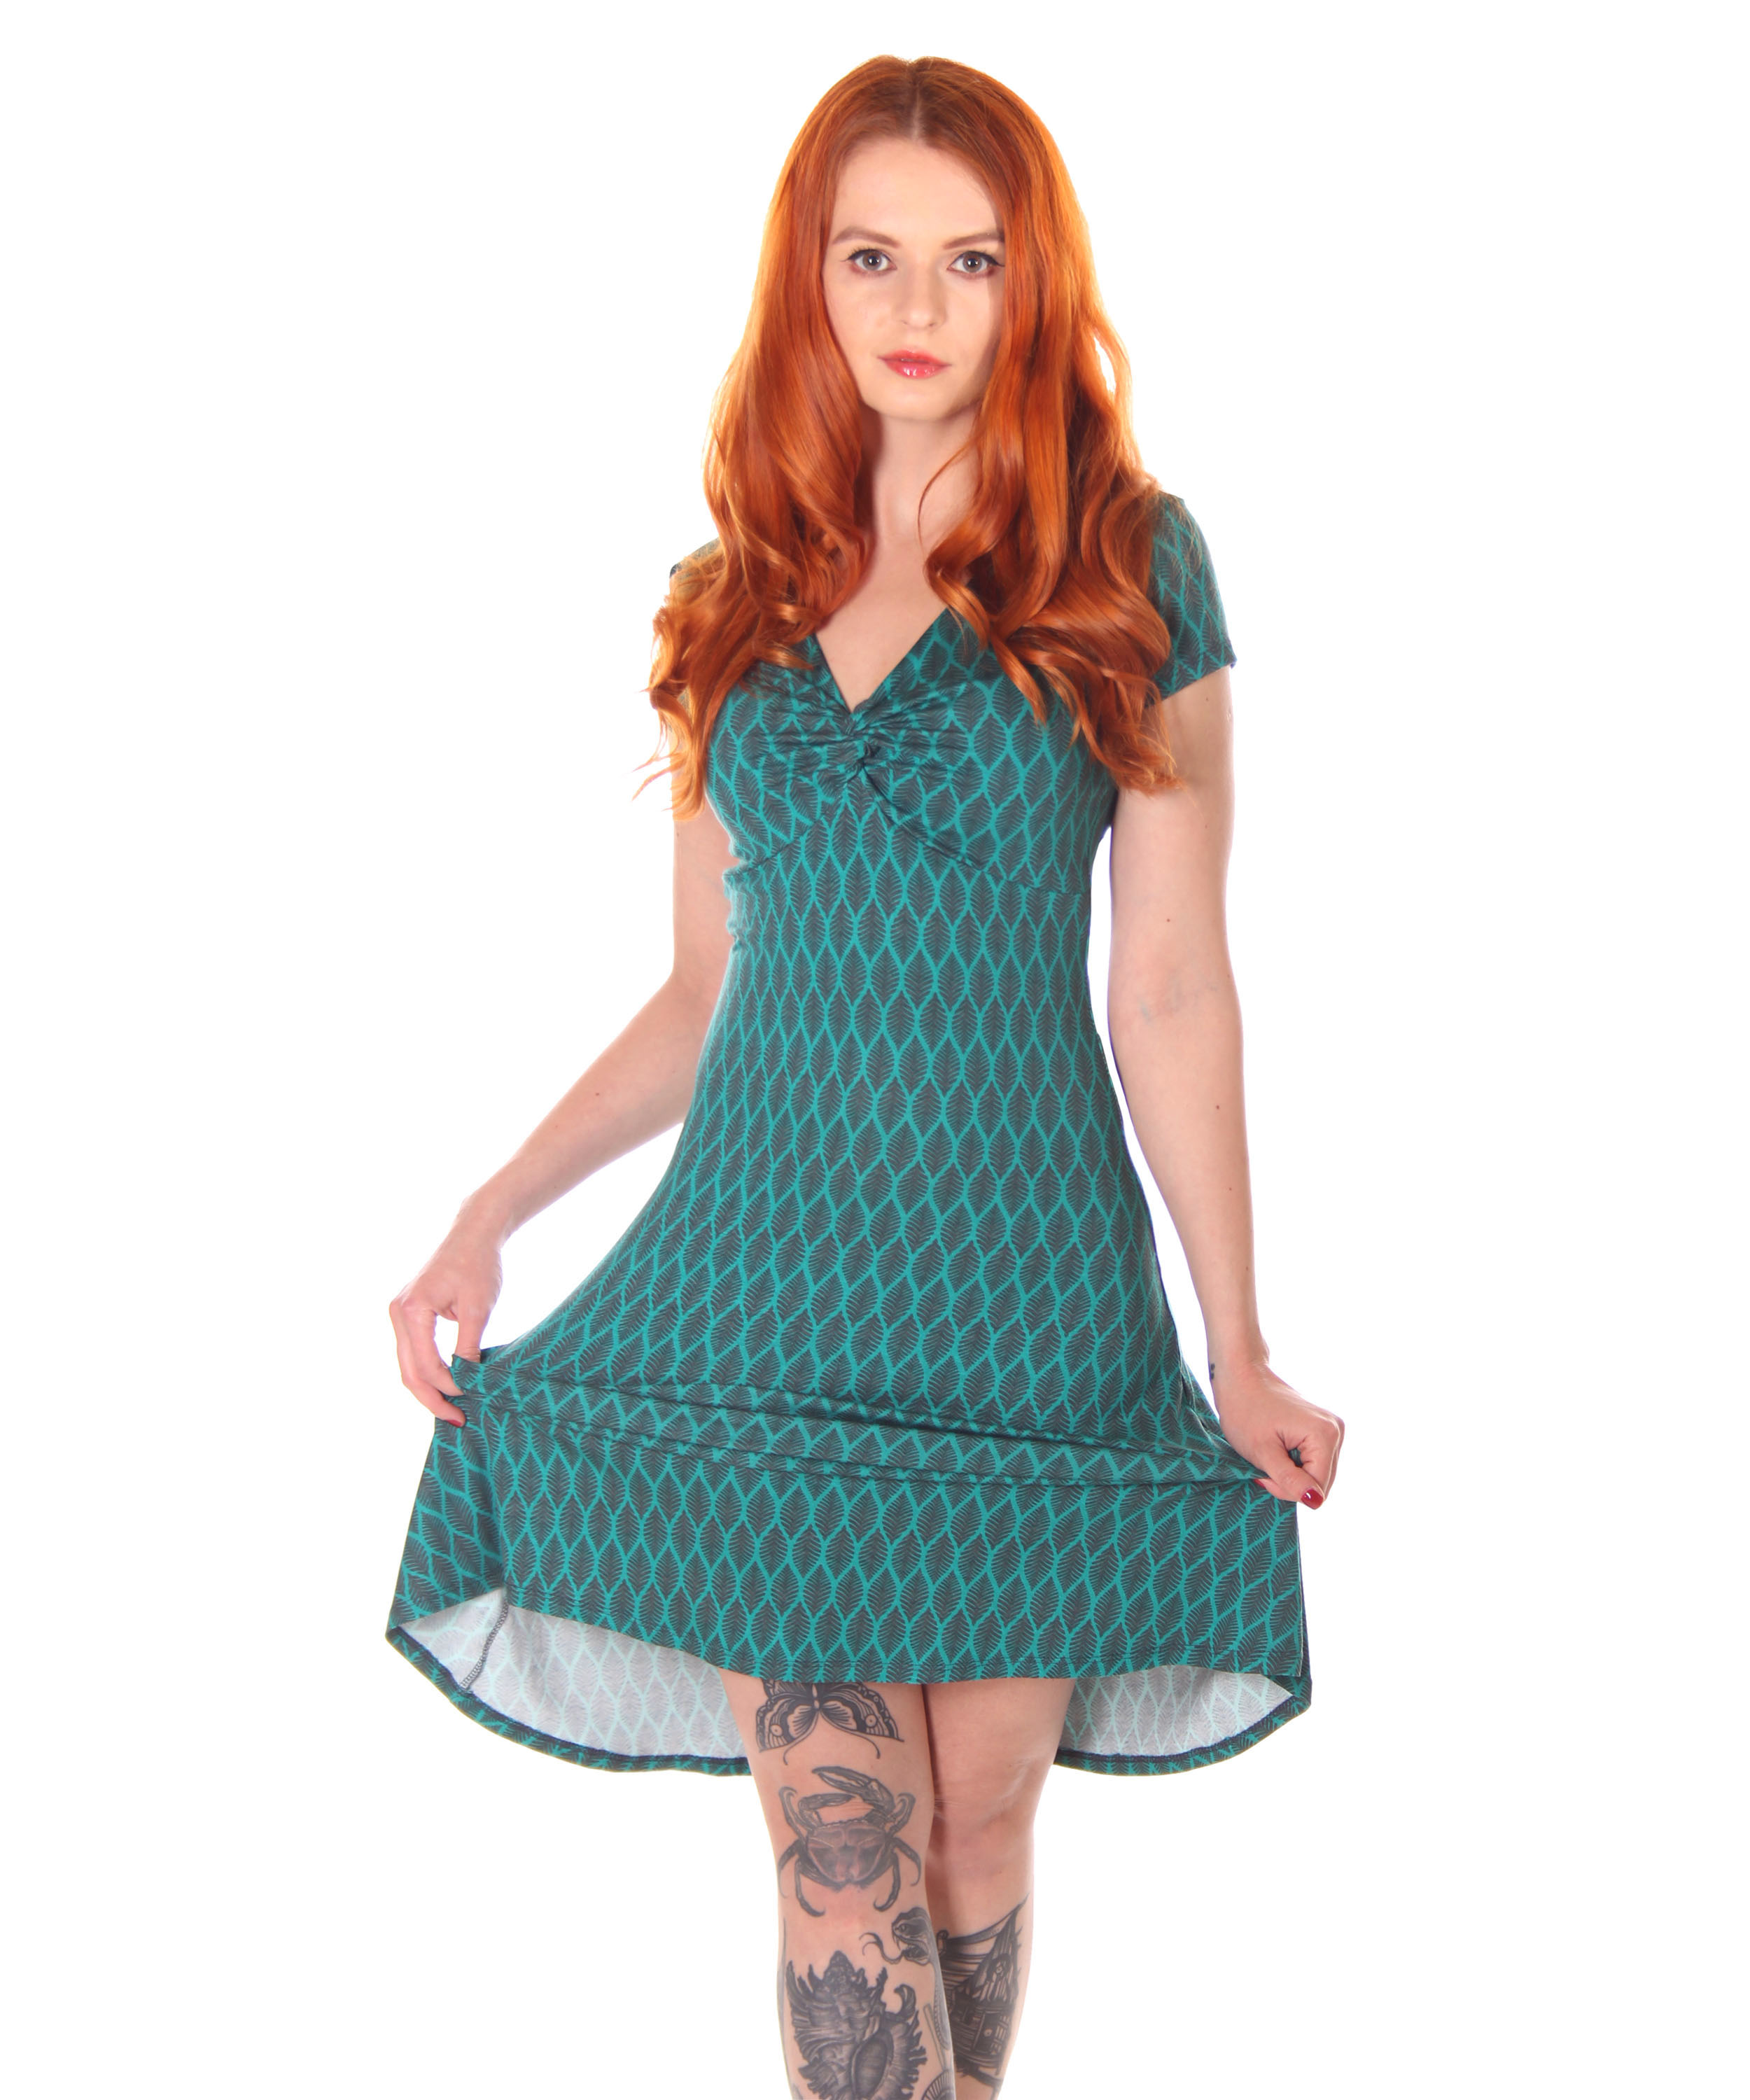 SugarShock Yayla 14er retro Style Sommer Kleid A-Linie  Suicide Glam